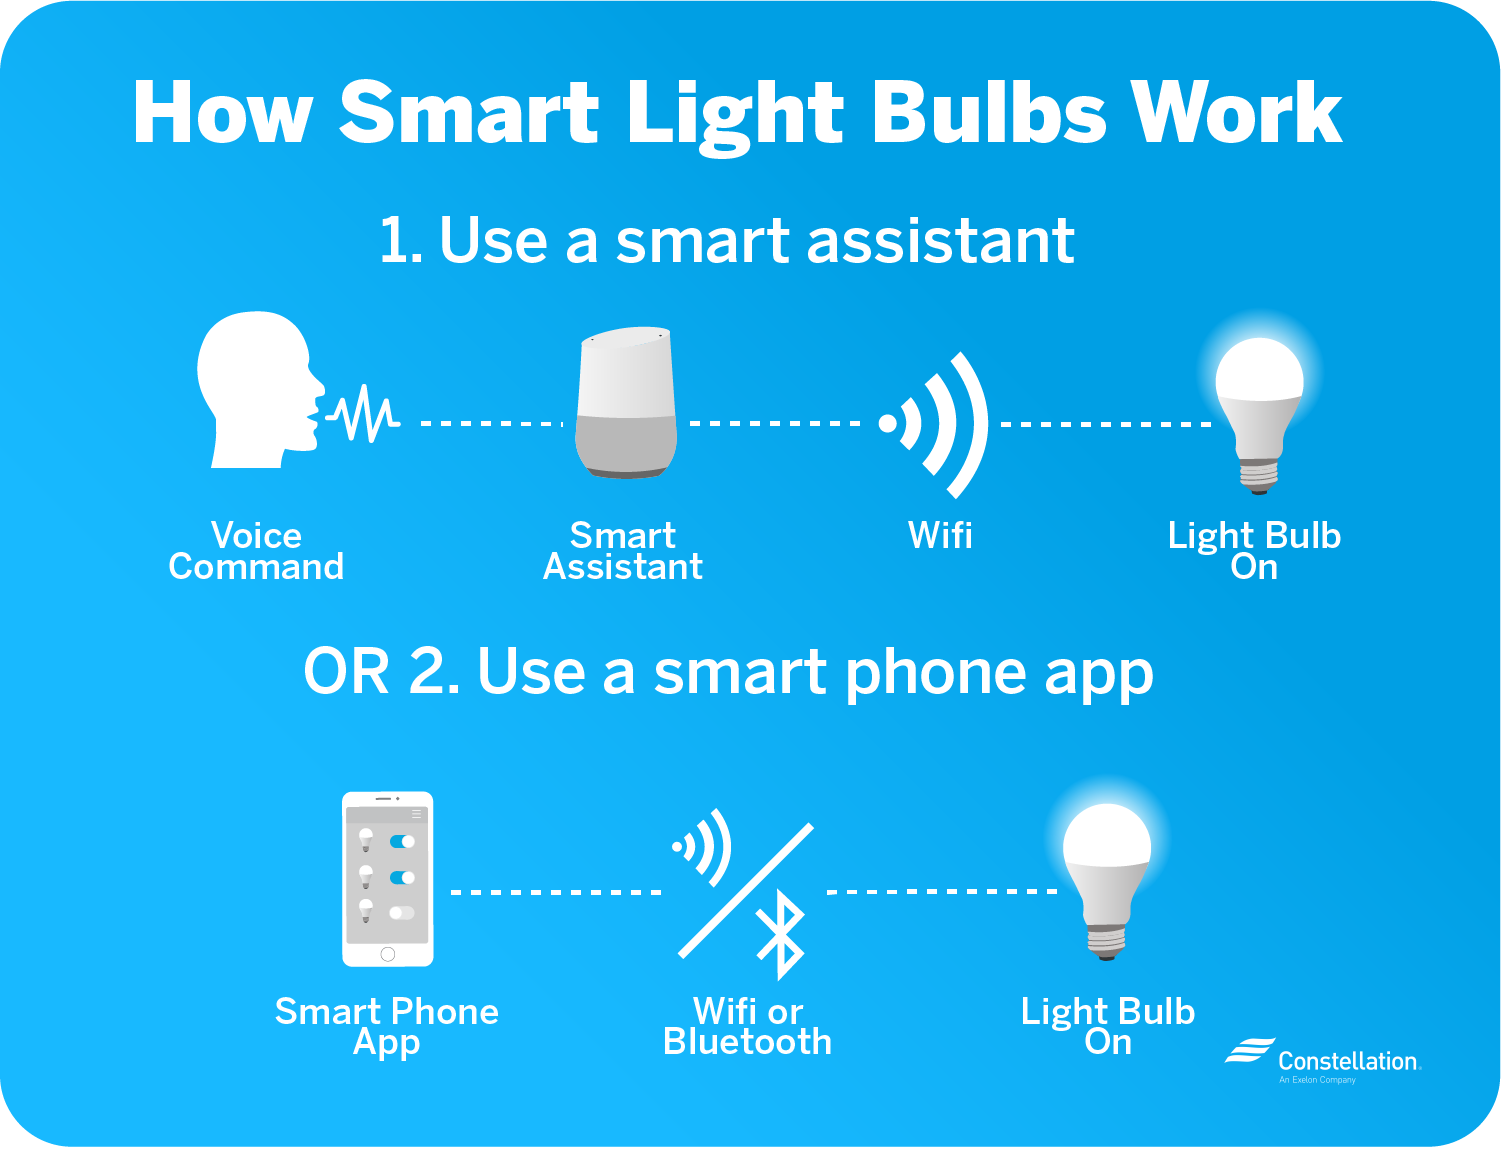 You can use voice control or smart phone apps to operate your smart light bulbs